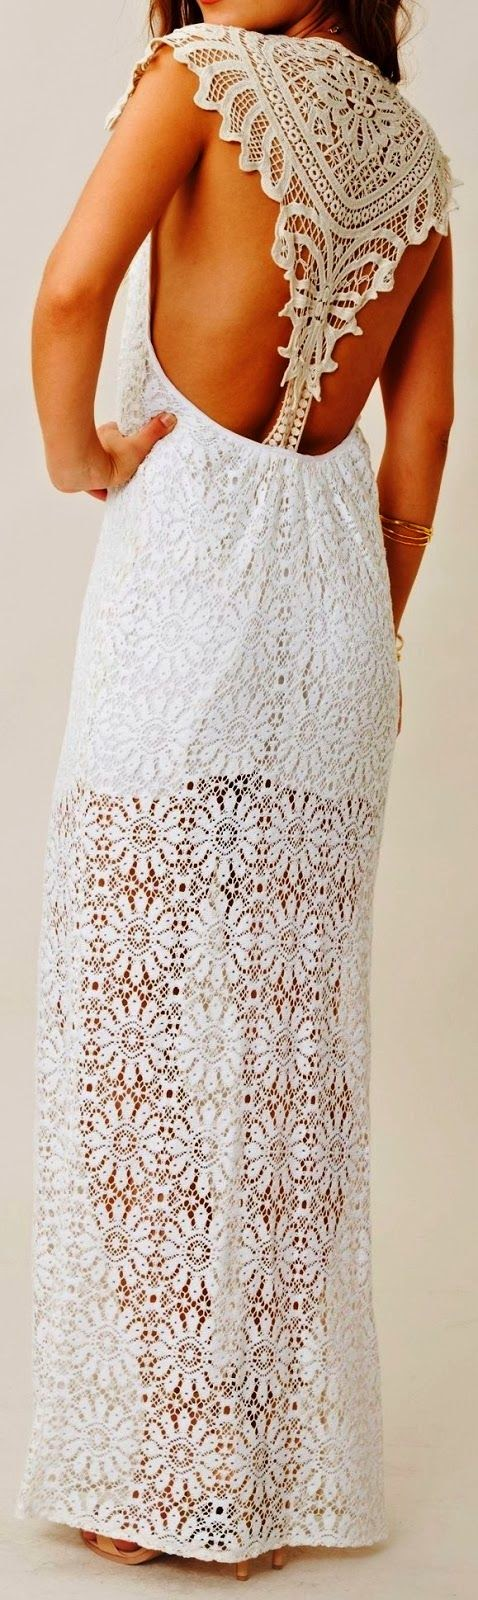 See more Gorgeous embroidered back detail lace maxi dress | LBV ♥✤ | KeepSmiling | BeStayElegant